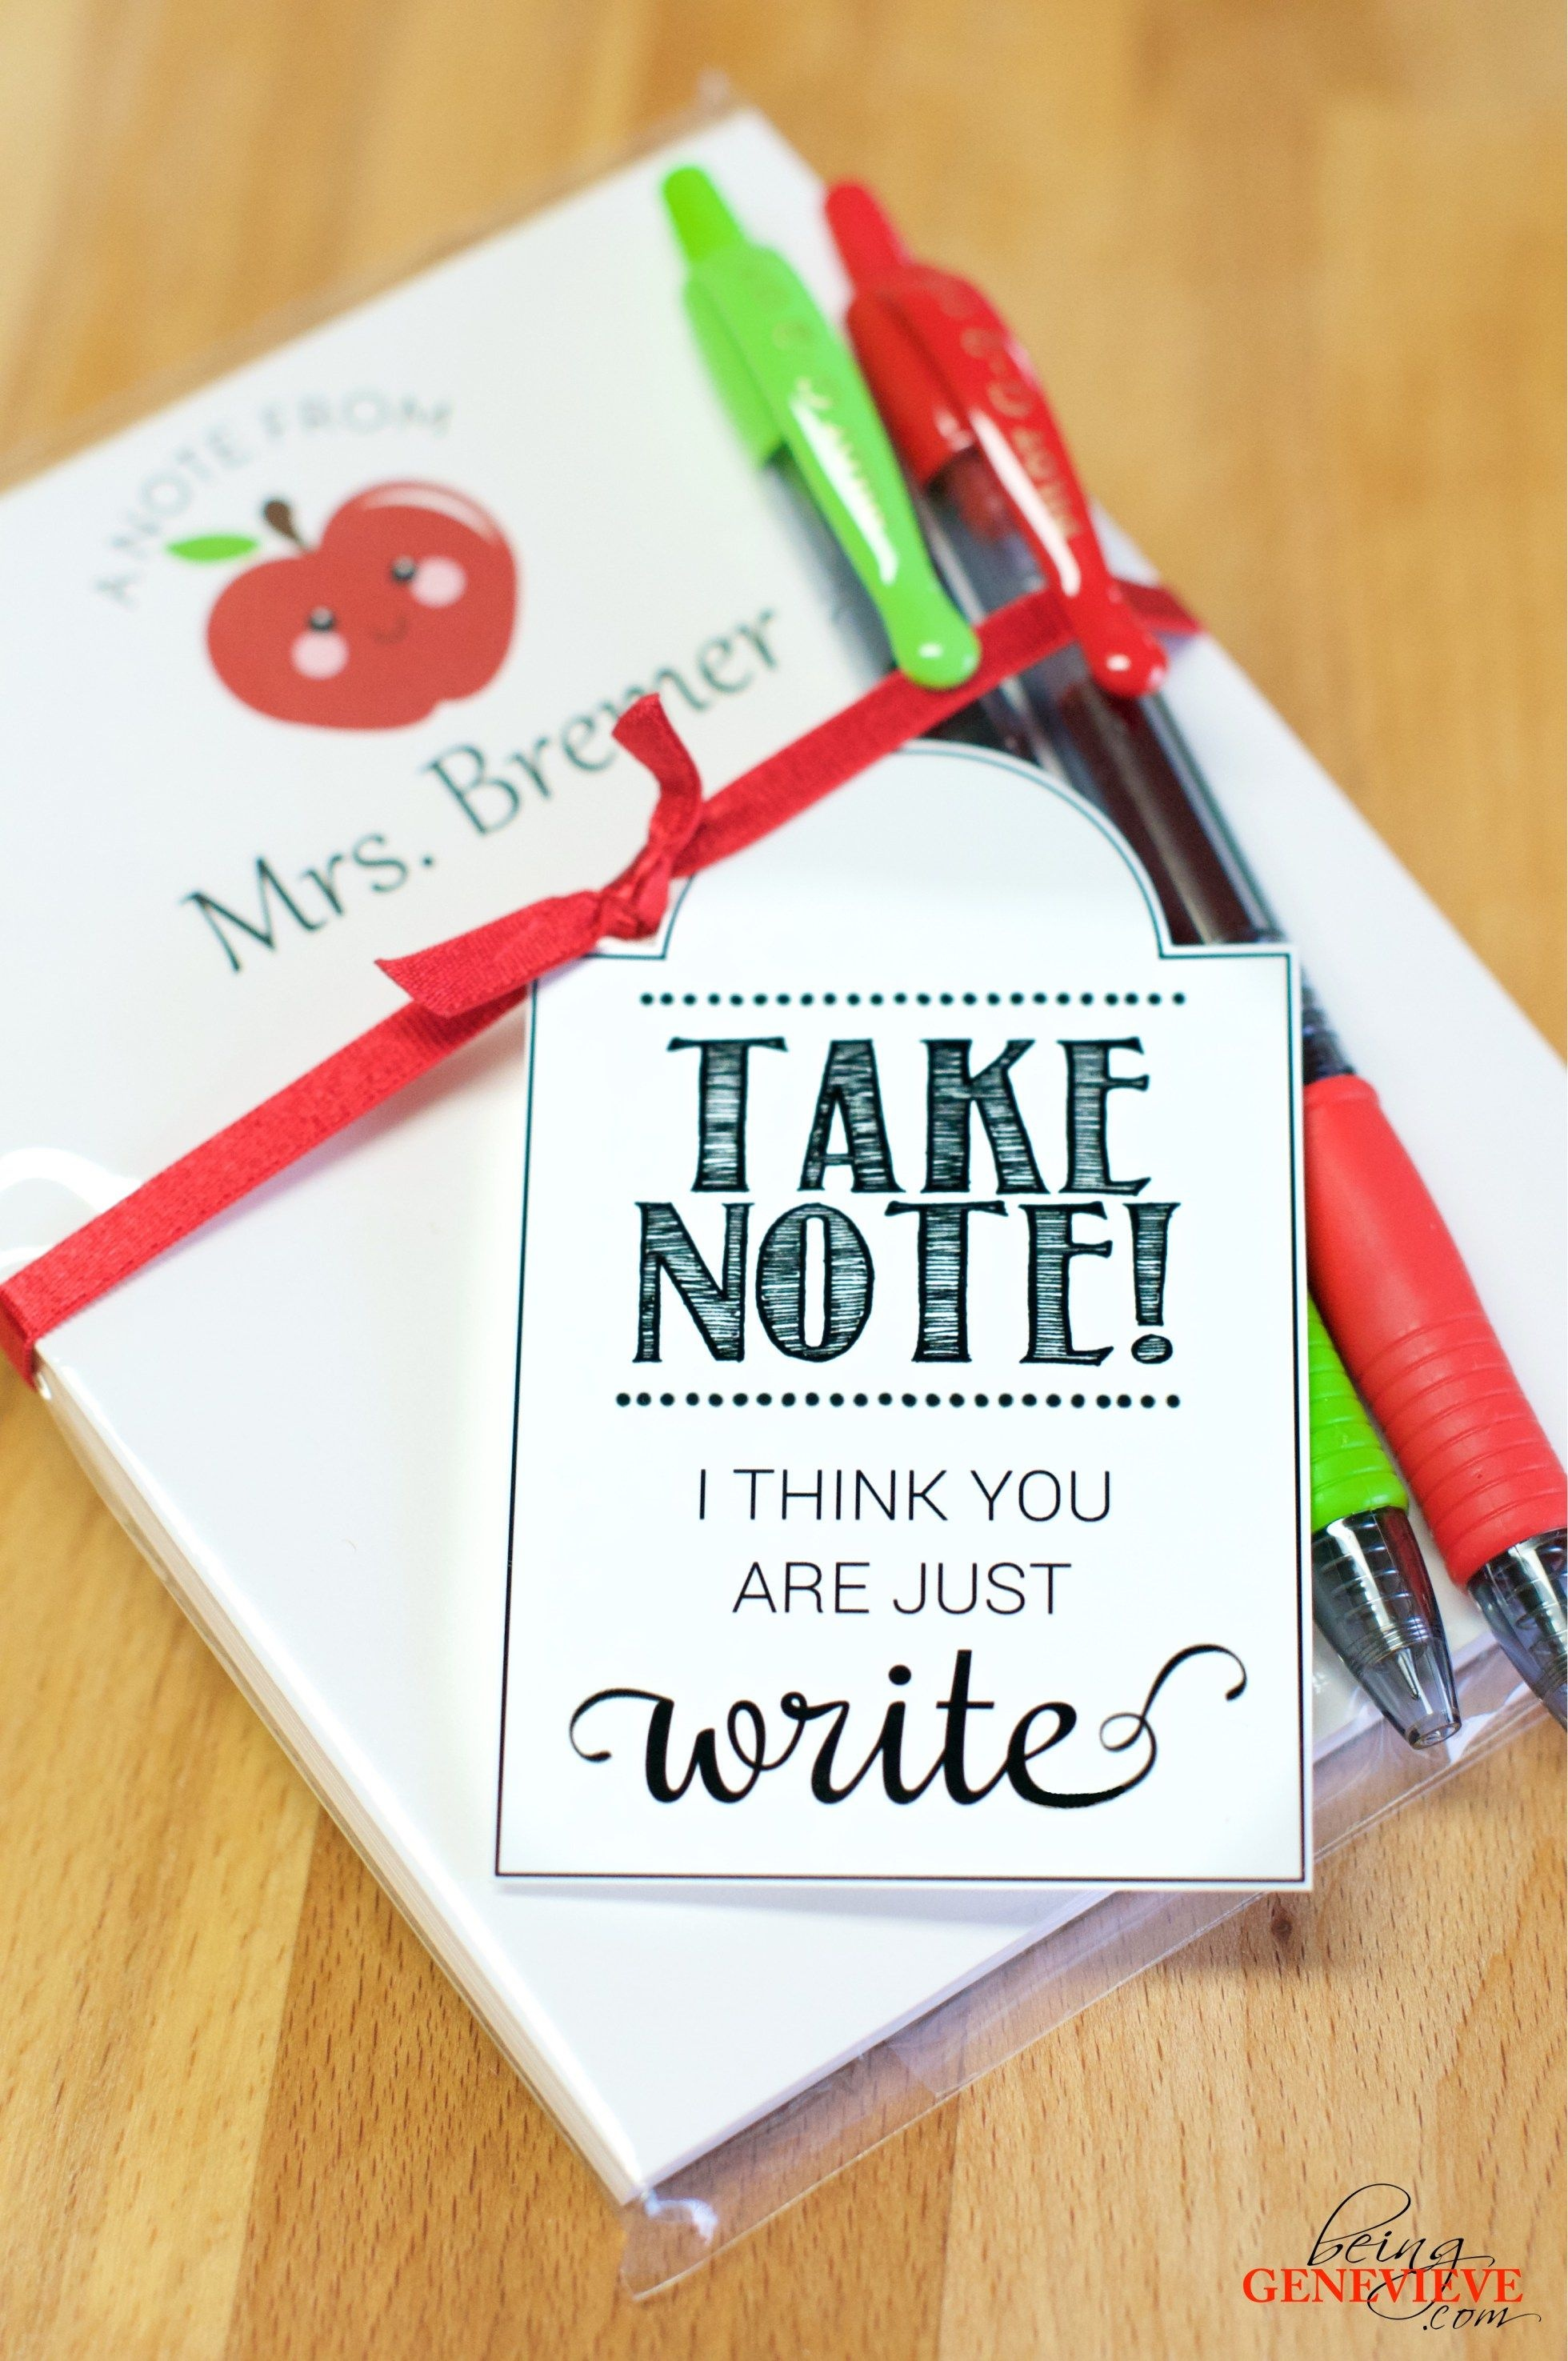 Take Note | Beinggenevieve | Teacher Appreciation Gifts, Teacher - Take Note I Think You Are Awesome Free Printable